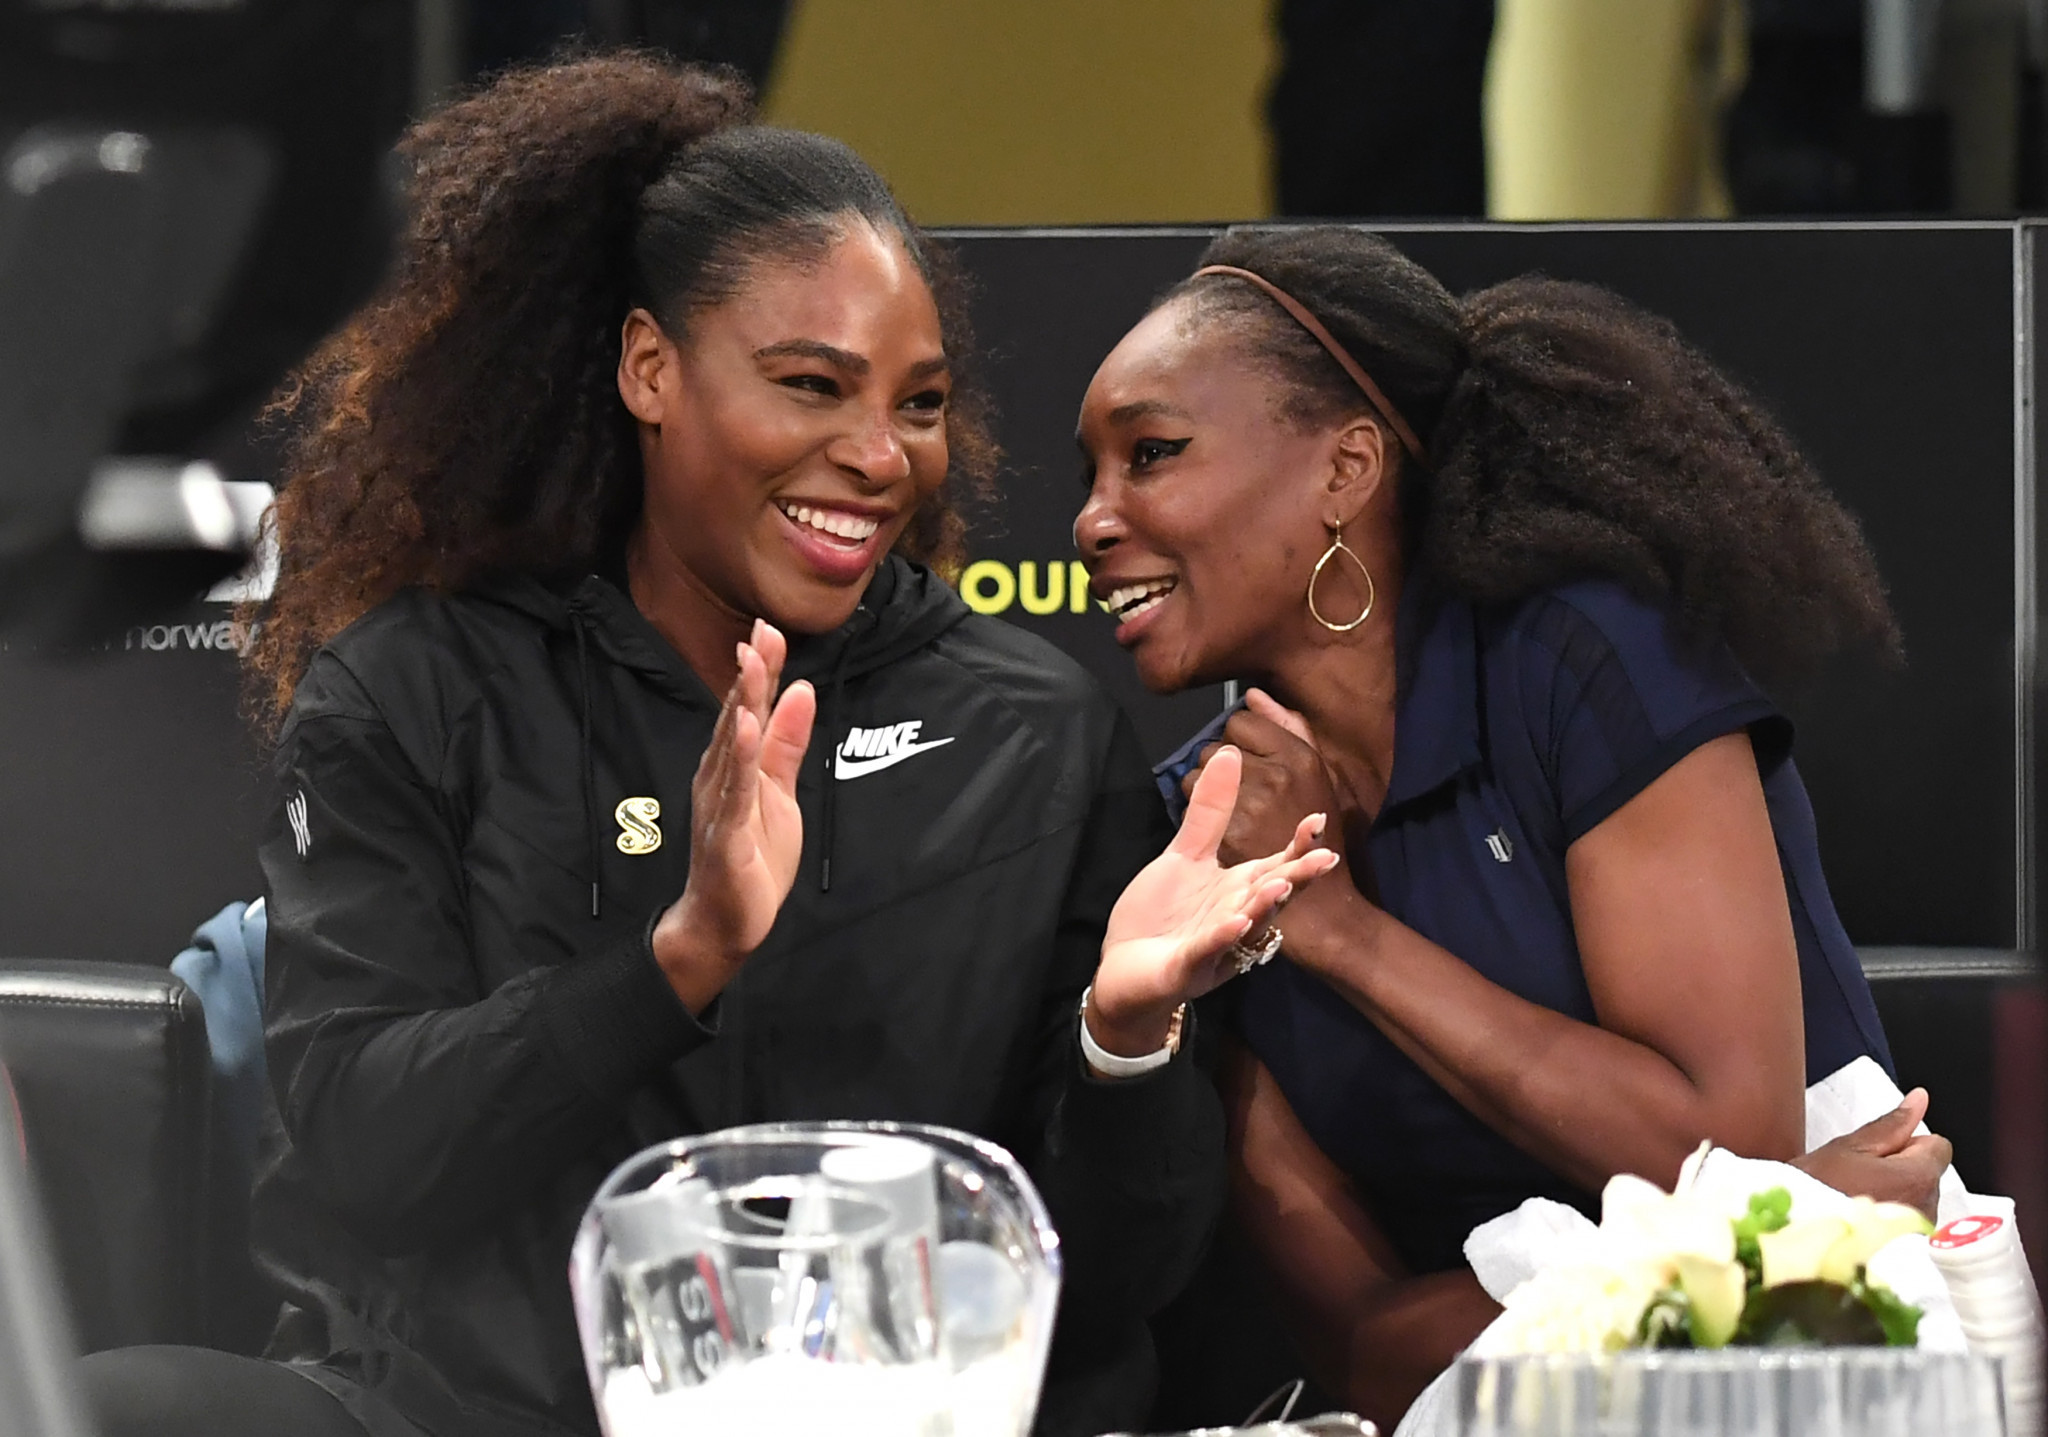 Serena powers to 1st win in comeback with baby on her mind